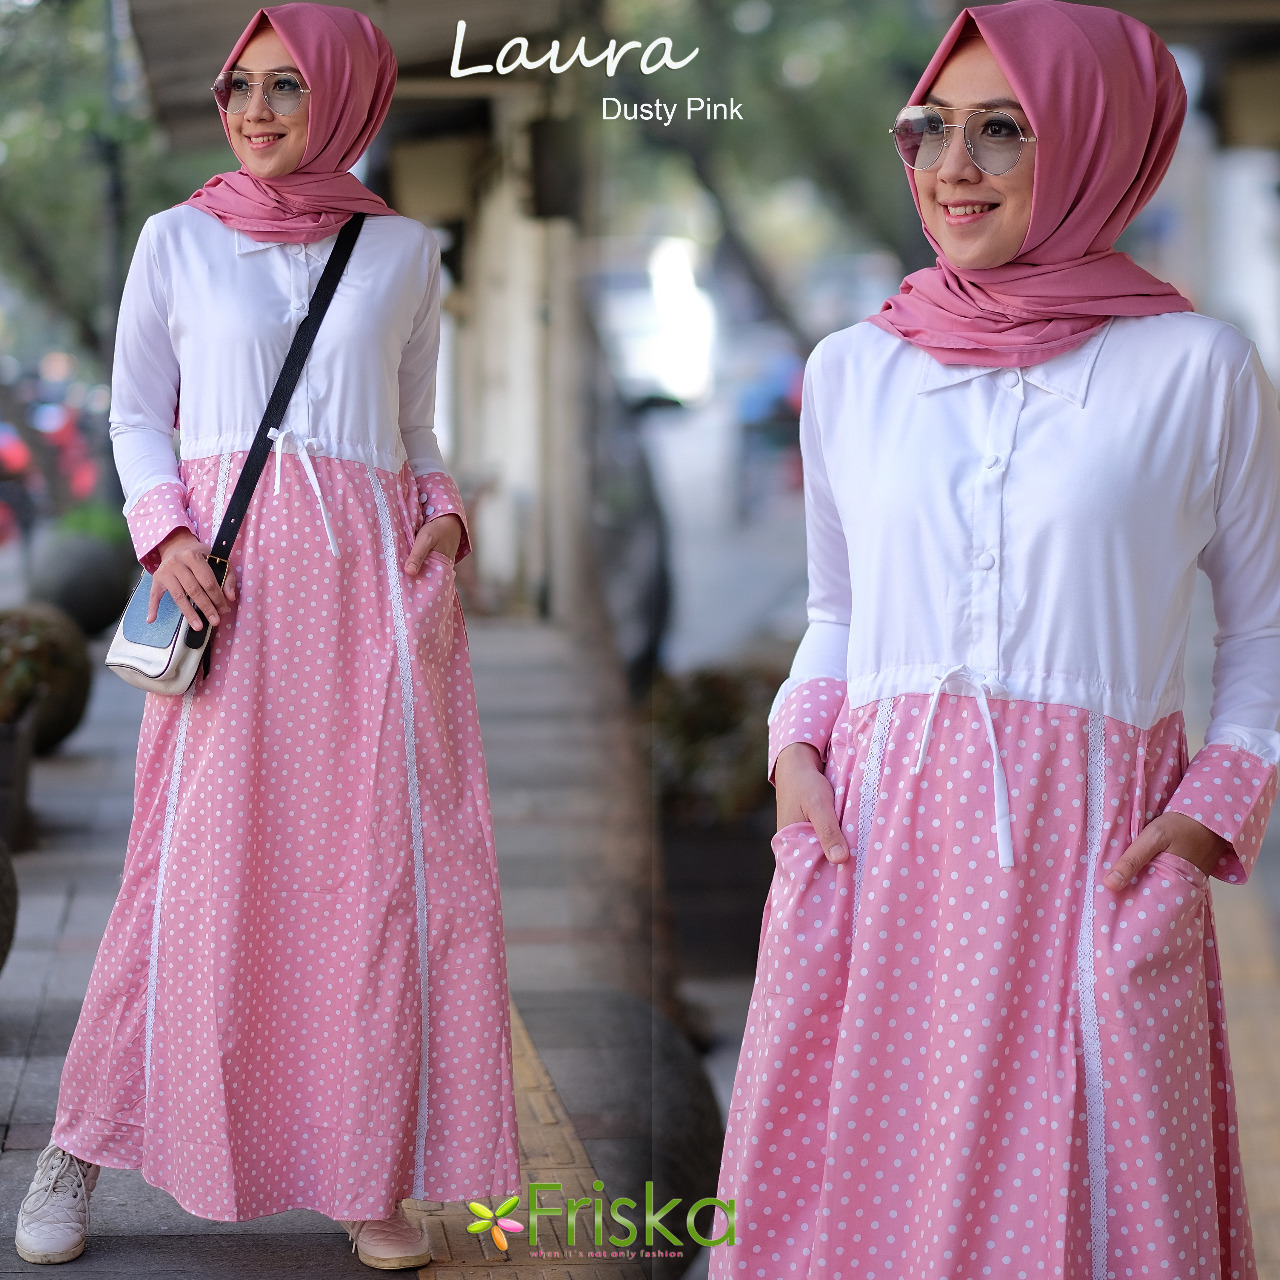 Laura By Friska Dusty Pink